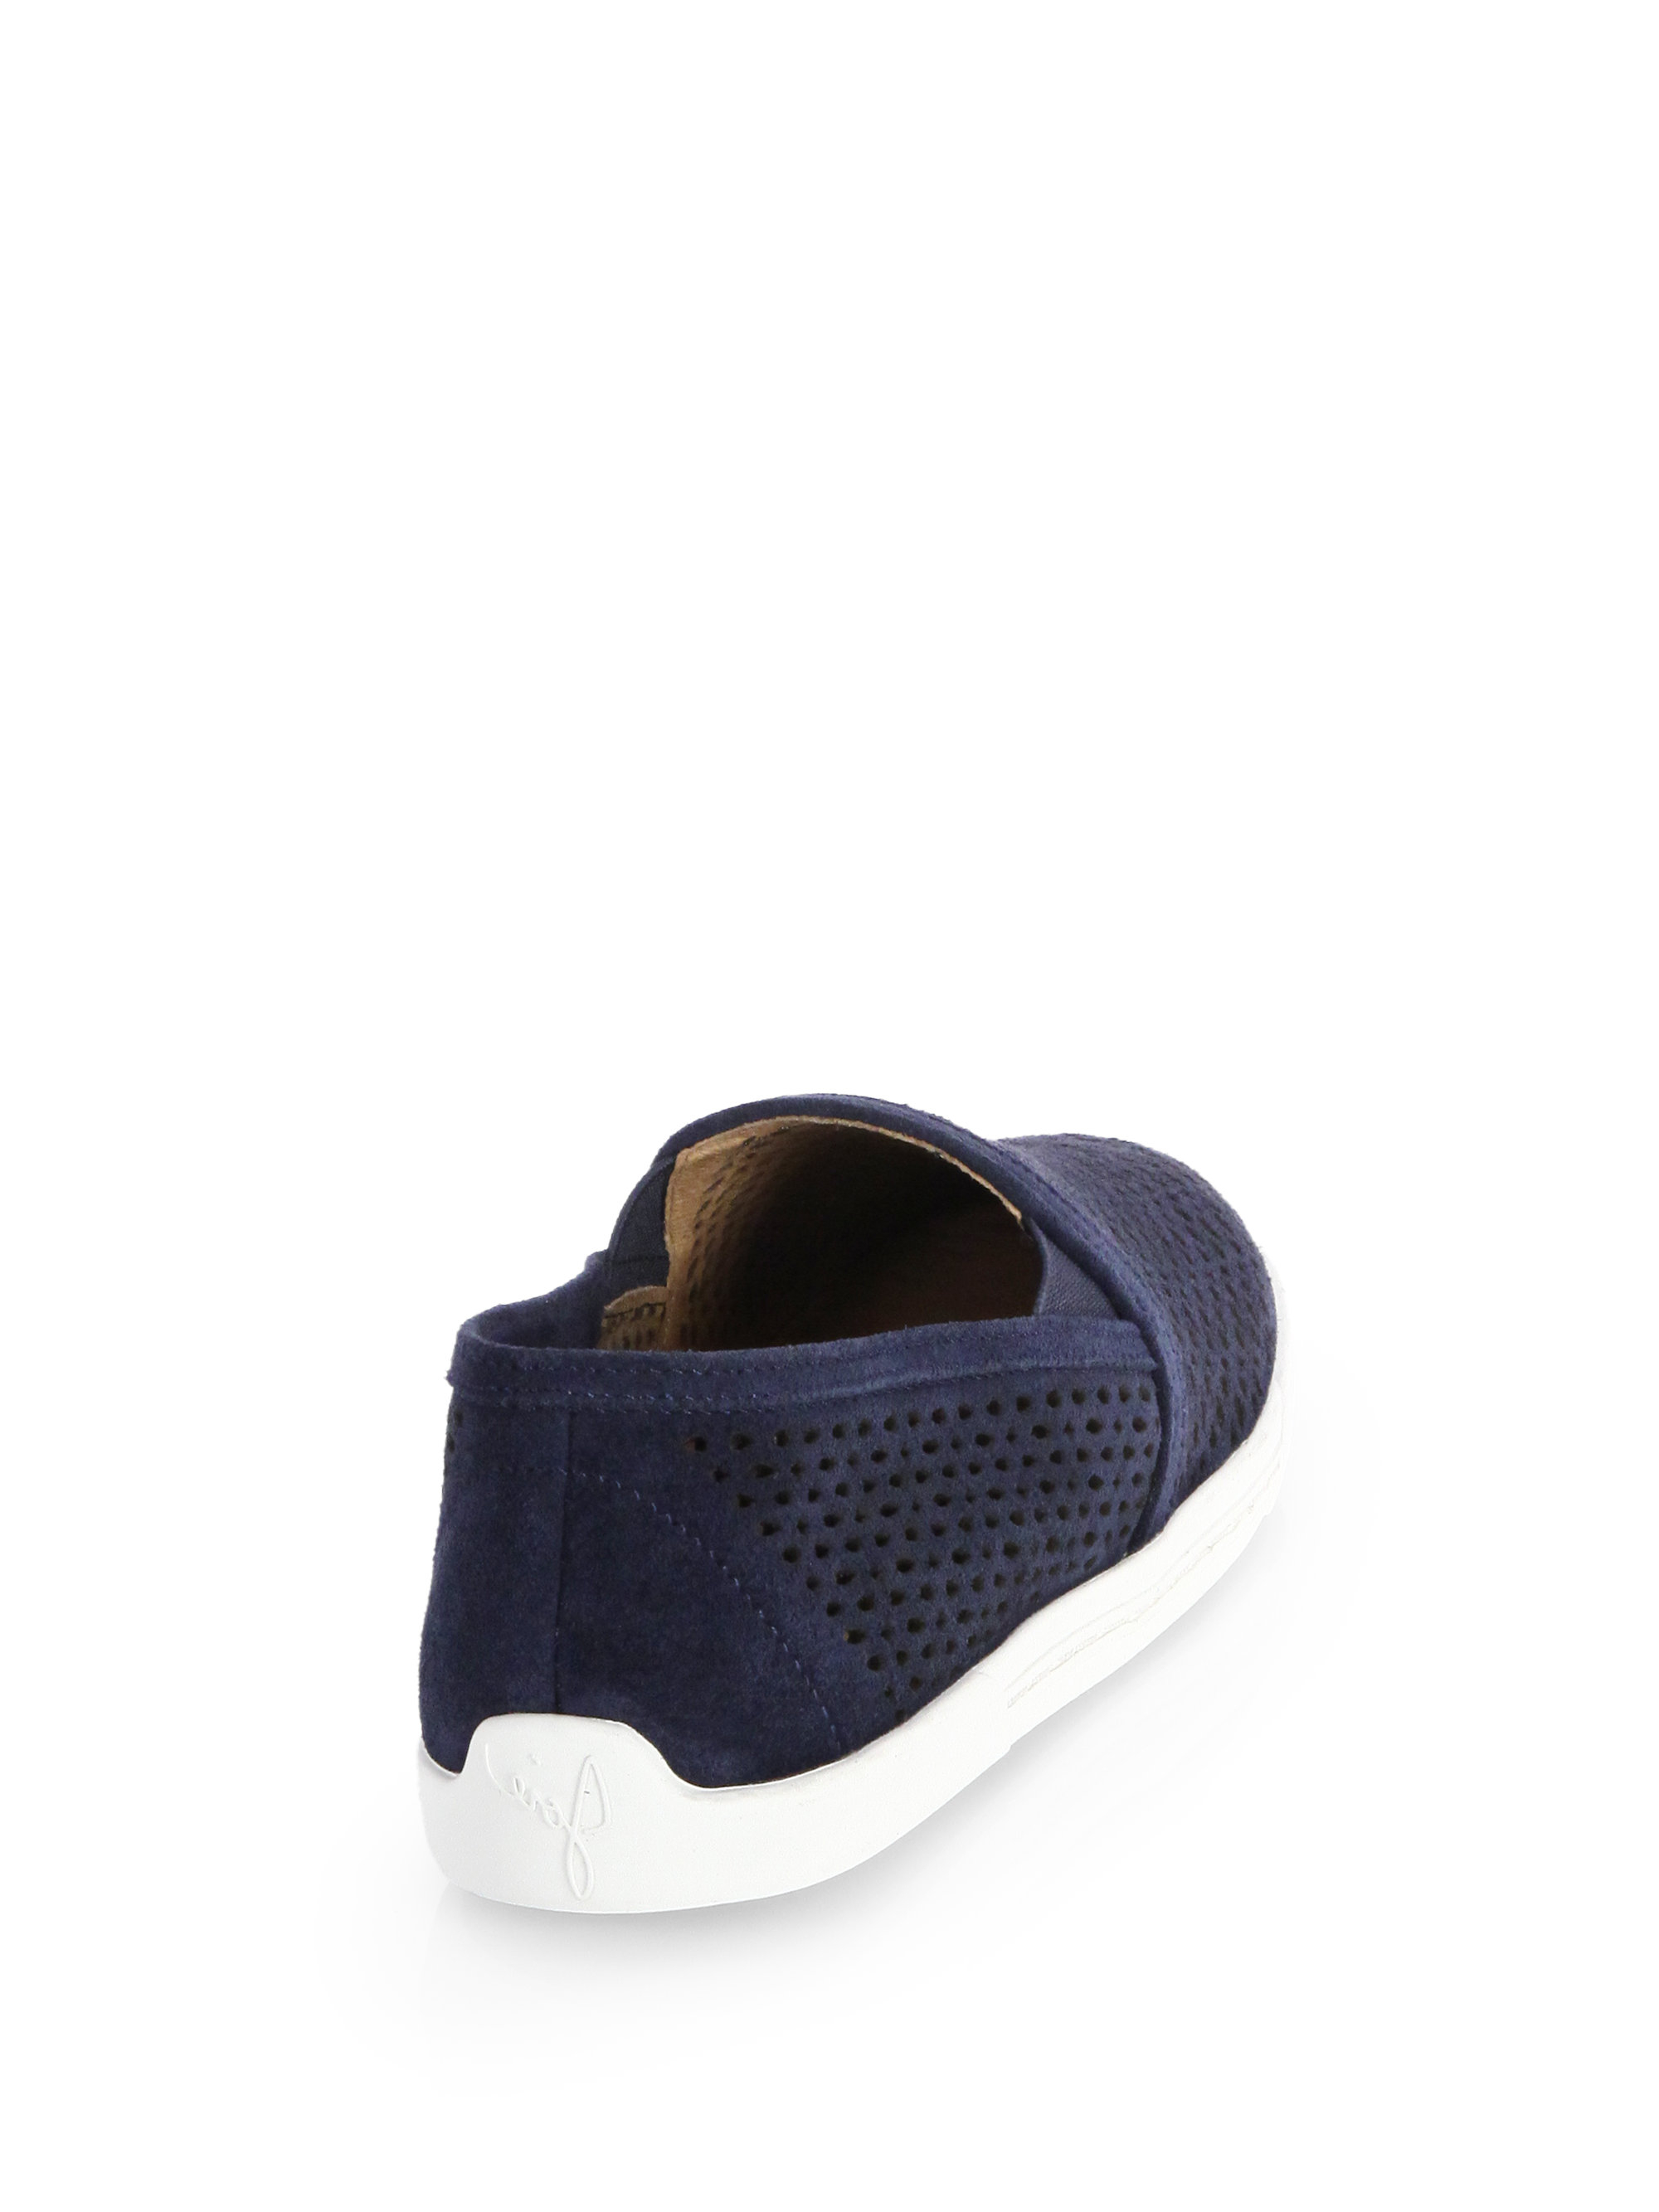 Joie Kidmore Perforated Suede Laceless Sneakers In Mink